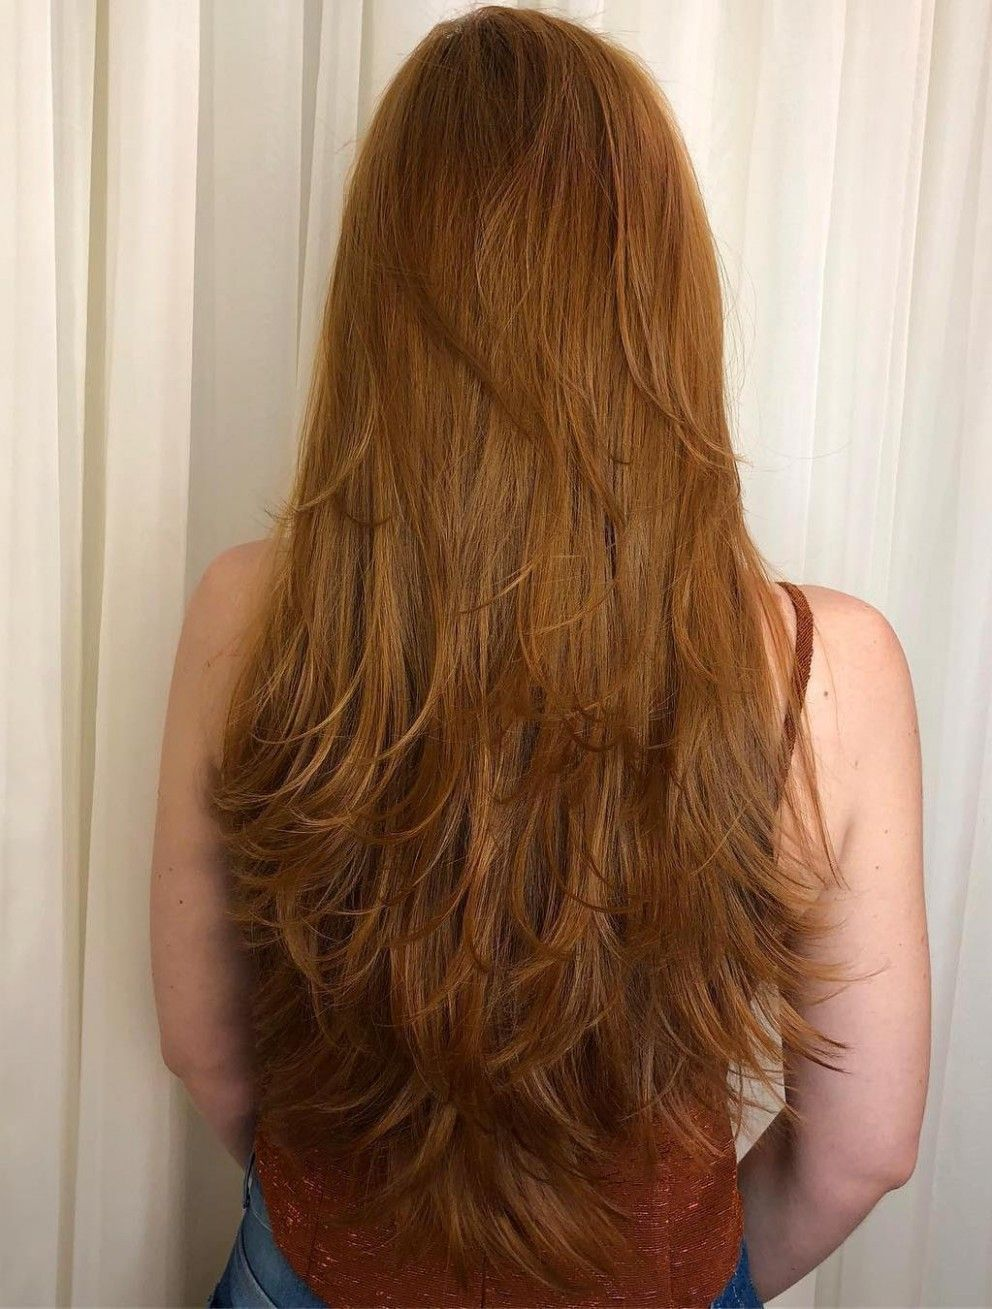 Layer Long Hair Or Not In 2020 Long Layered Hair Haircuts For Long Hair Straight Hairstyles